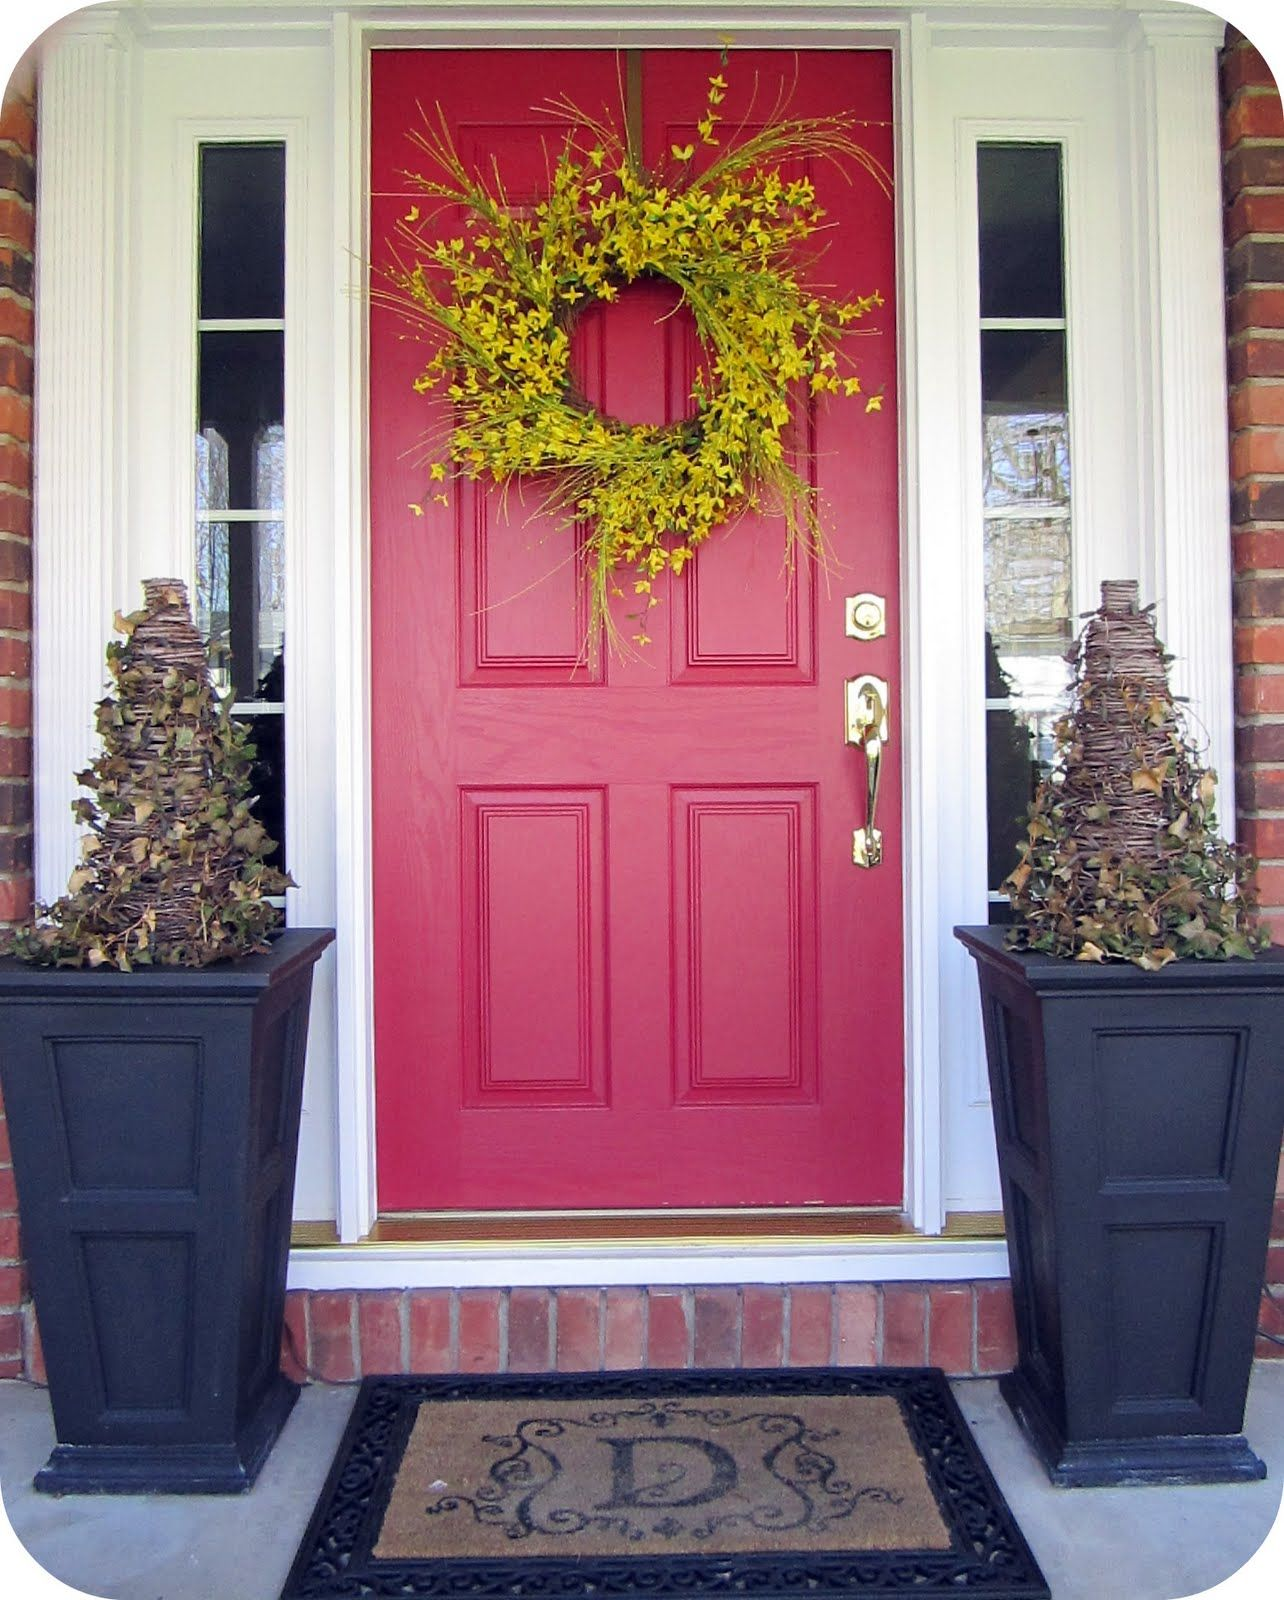 My Blue Front Door: Sherwin Williams Naval | No place like home ...